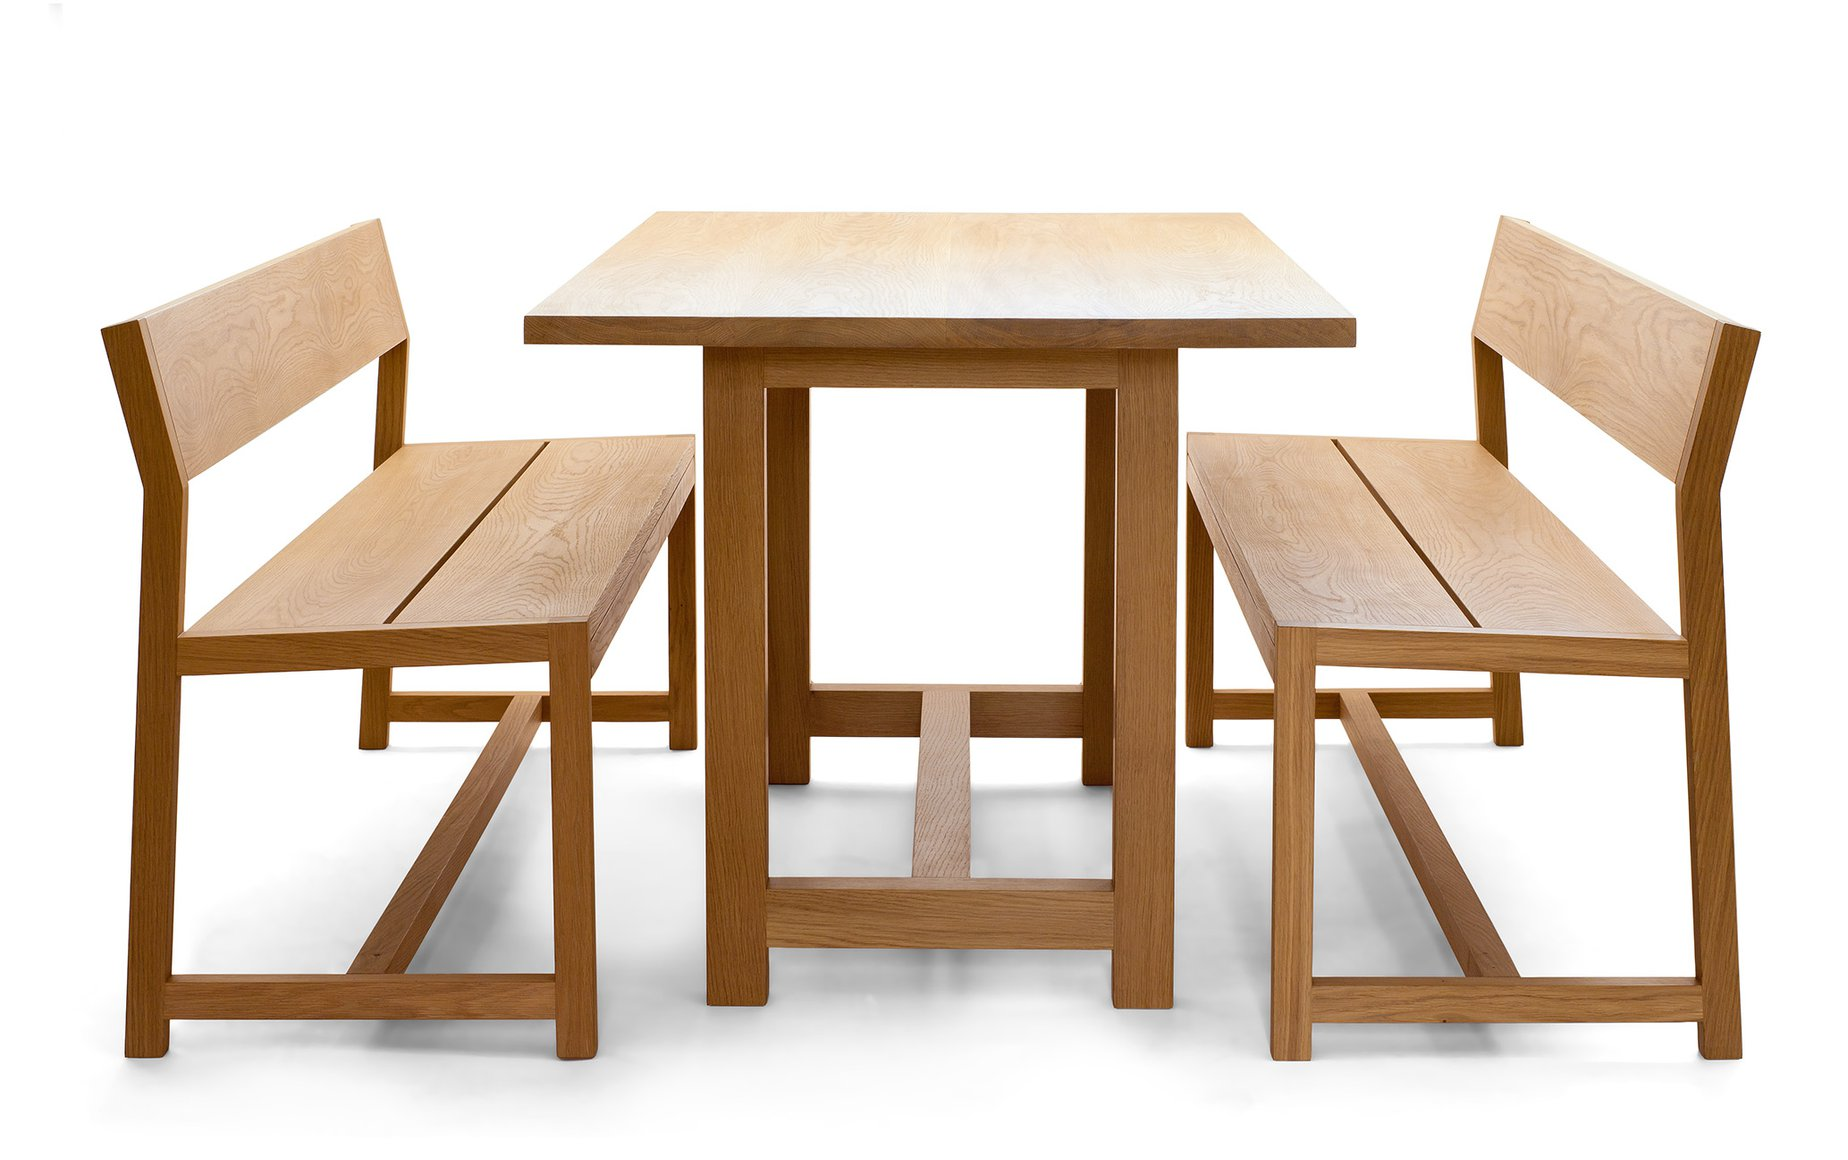 Mansfield table and benches